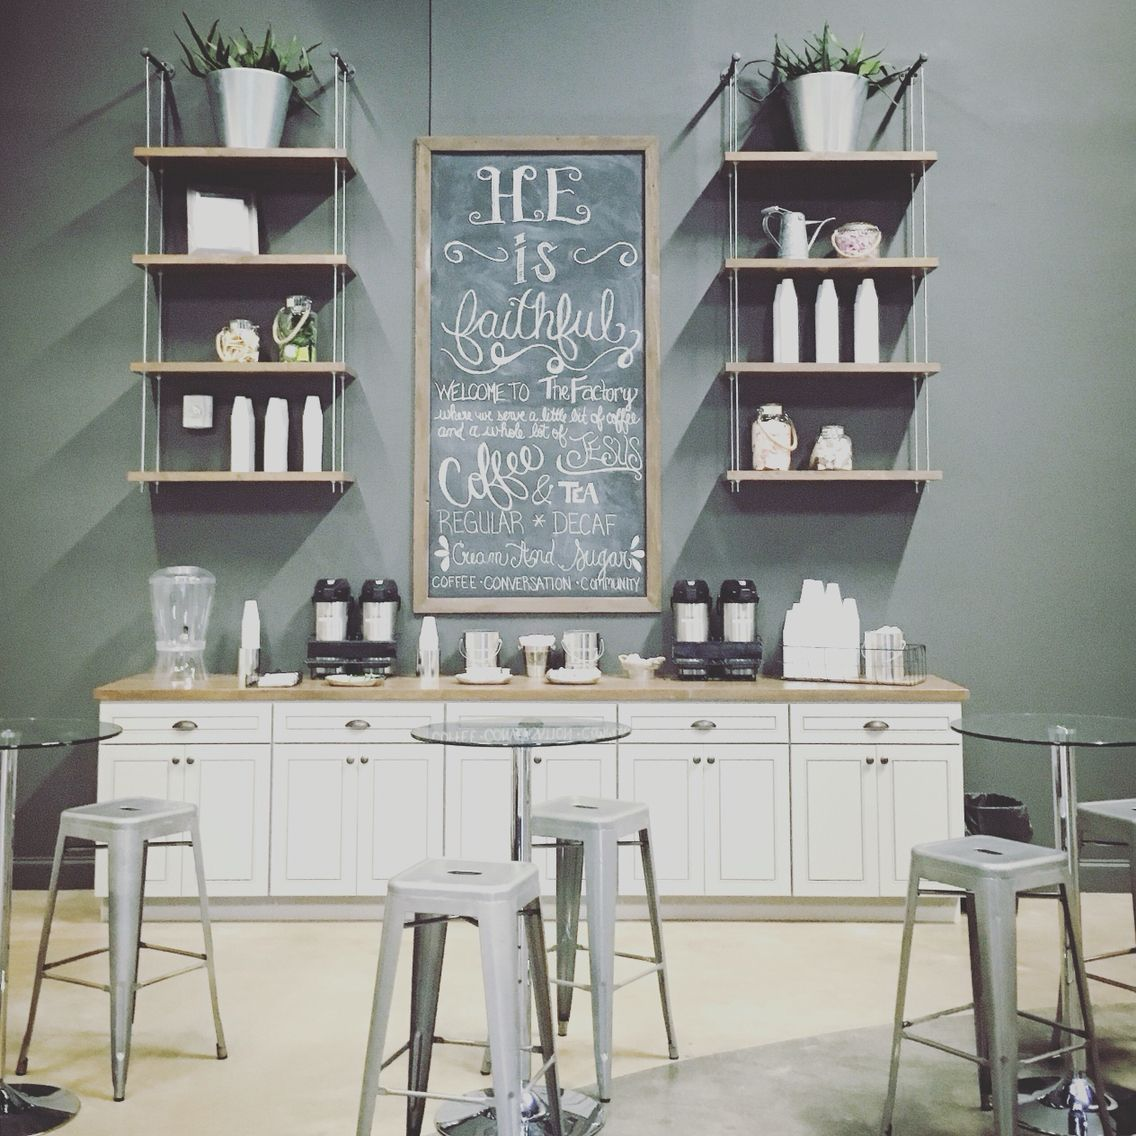 Free Home Interiordecorating Ideas: Custom Coffee Bar For Church. #thefunkydebutante